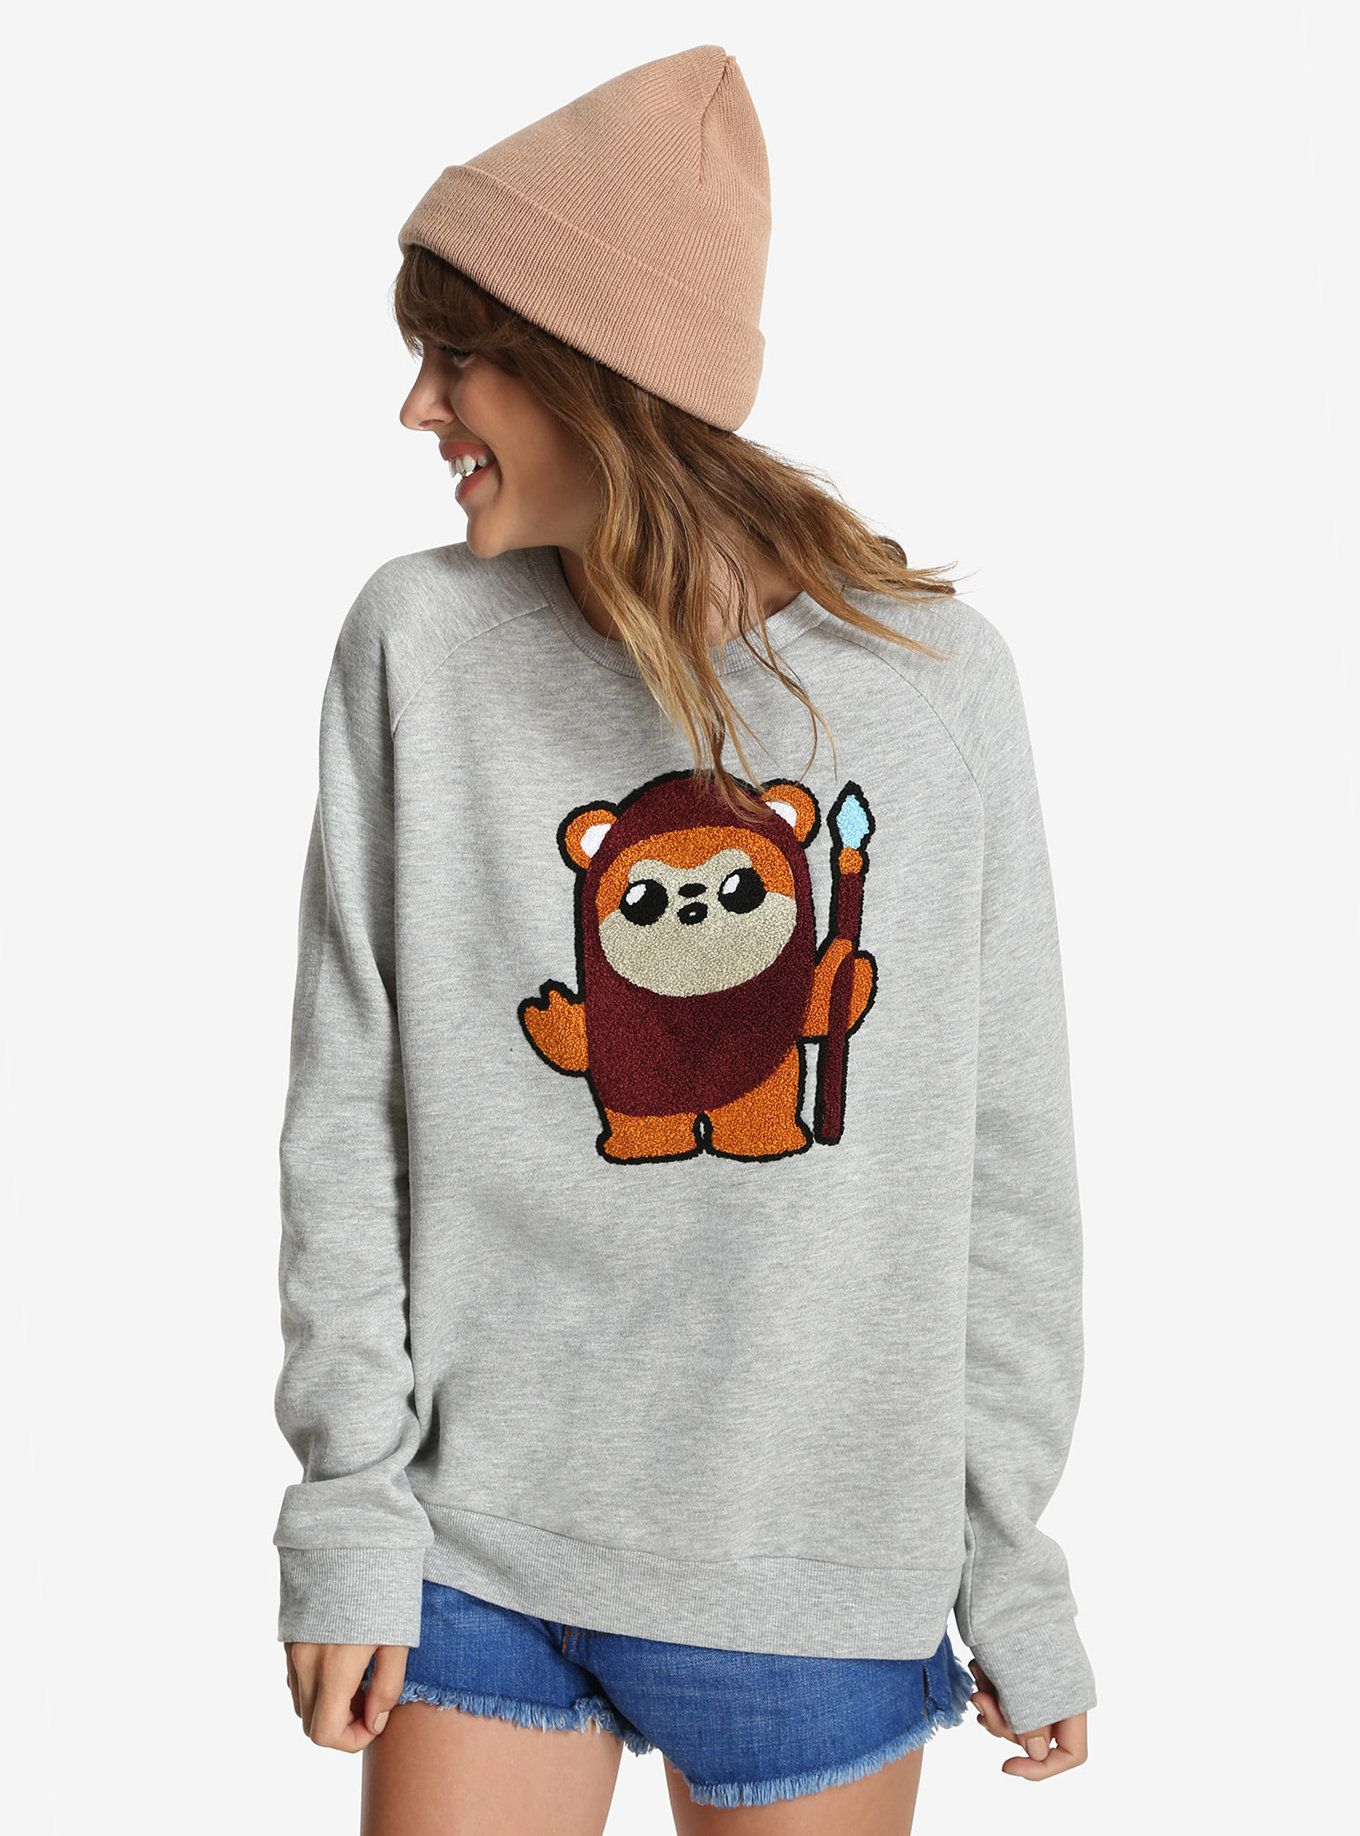 Star Wars Ewok Fuzzy Womens Pullover Sweatshirt BoxLunch - Hoodie will turn you into chewbacca from star wars